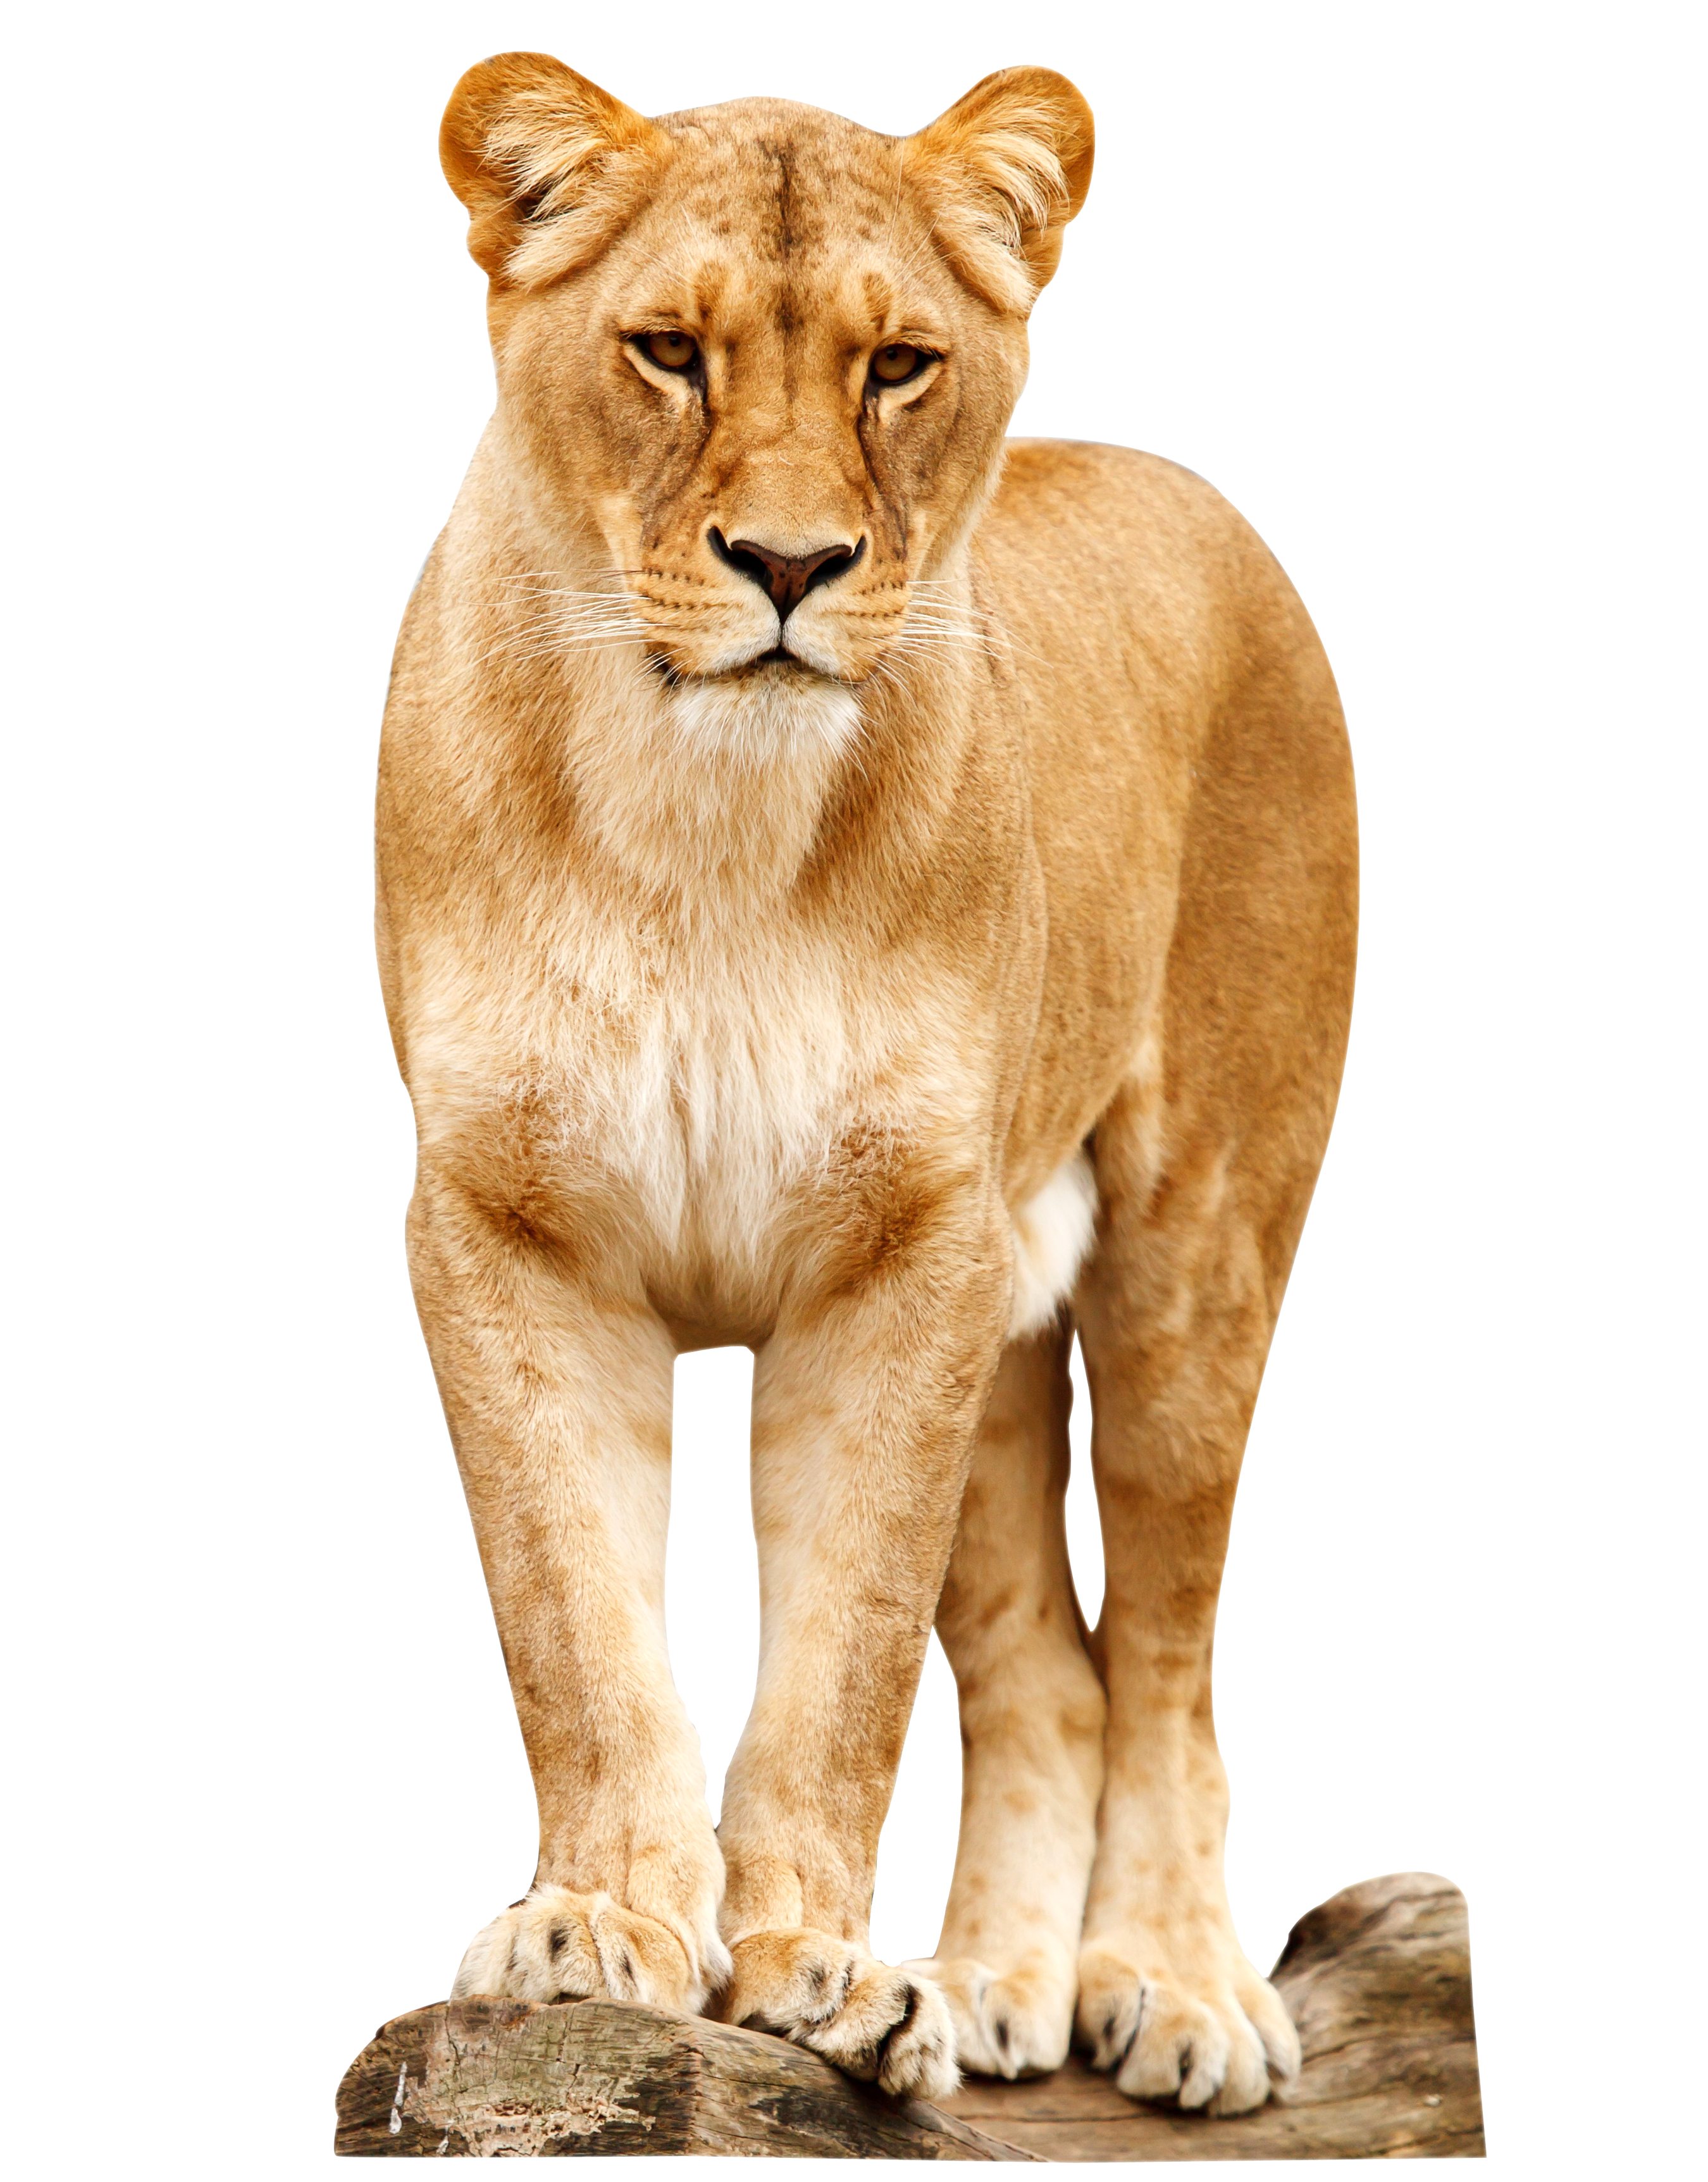 lion standing png image pngpix mountain lion clip art free mountain lion black and white clipart